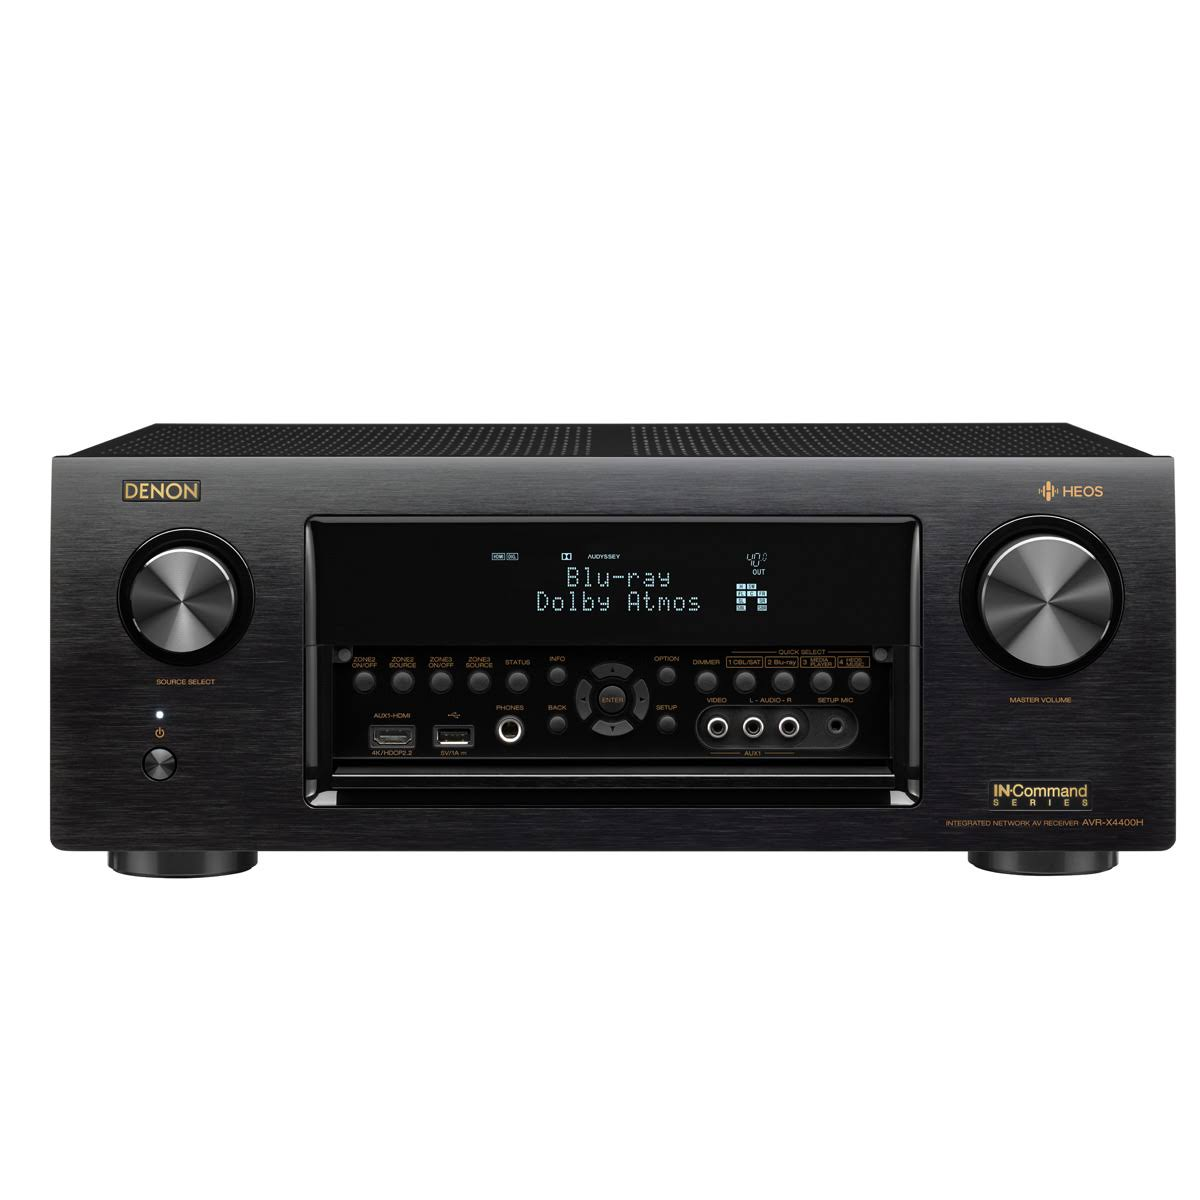 Denon AVRX4400H 9.2 Channel AV Network Receiver